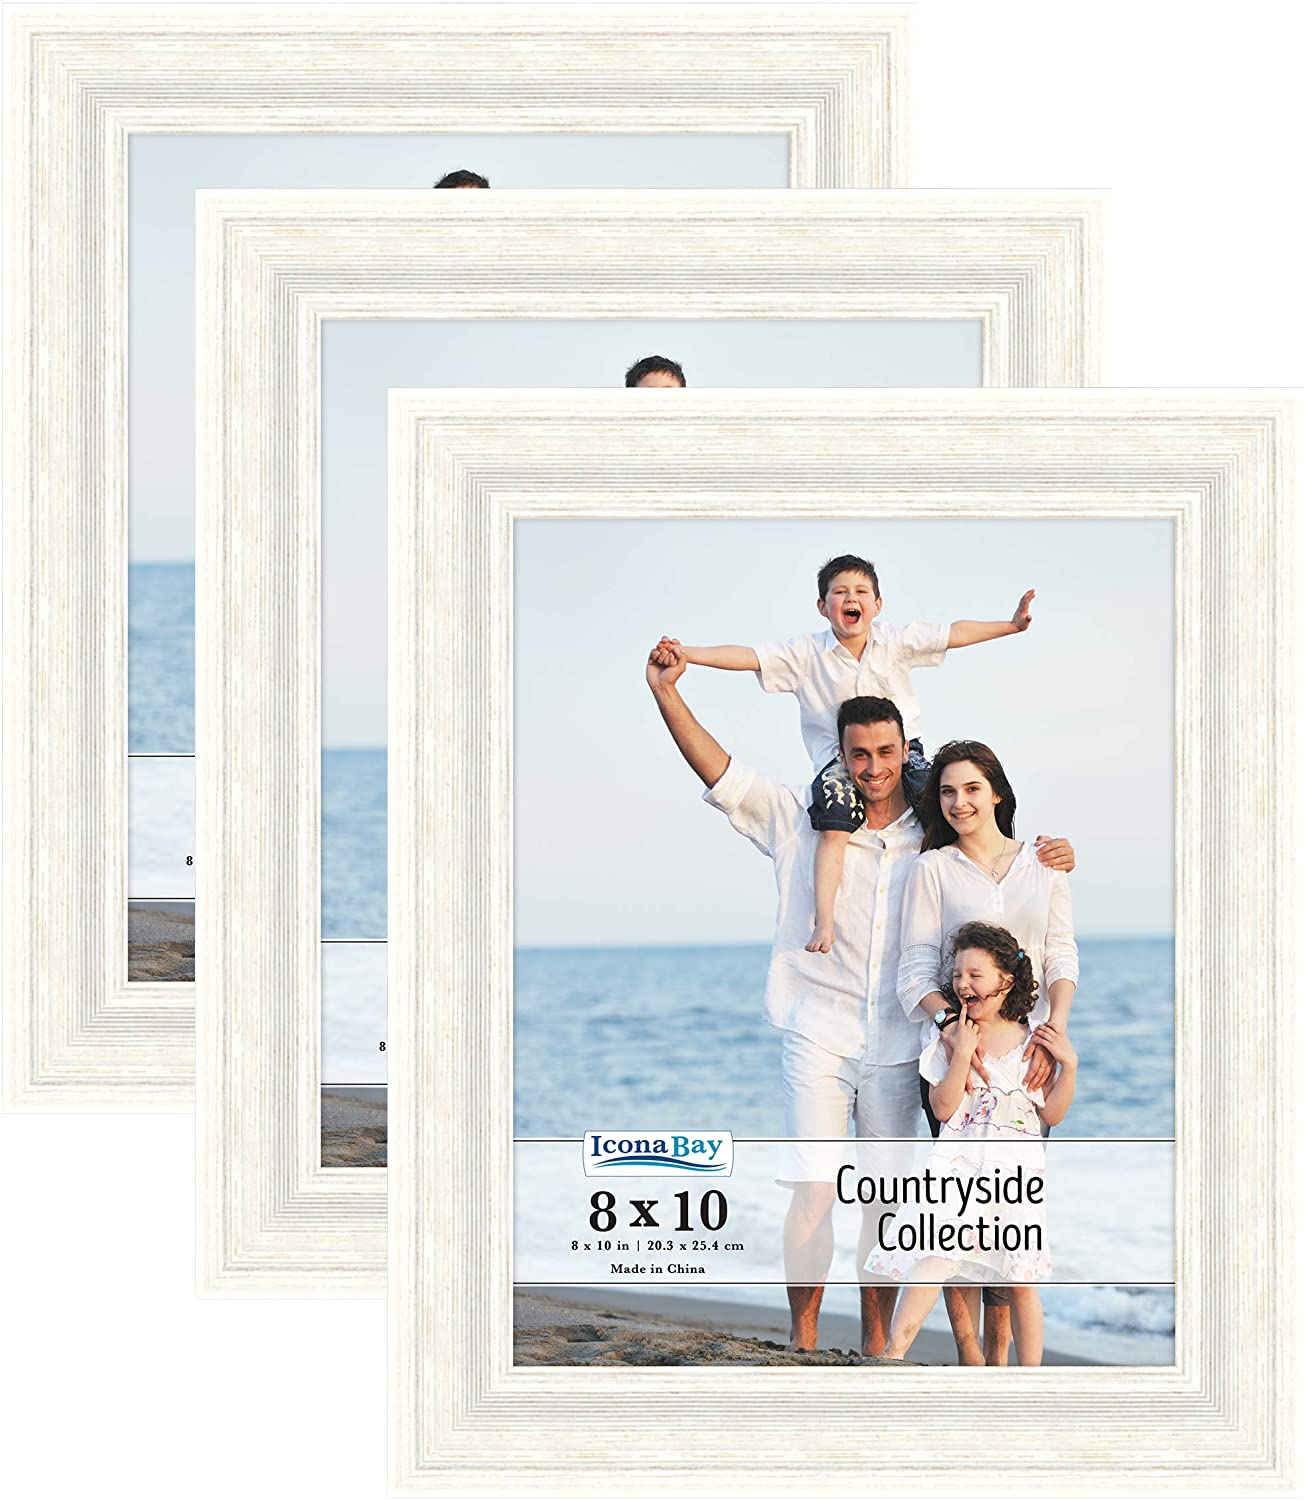 Icona Bay 8x10 Picture Frames (Alpine White, 3 Pack), French Country Style Picture Frame Set, Wall Mount or Table Top, Countryside Collection